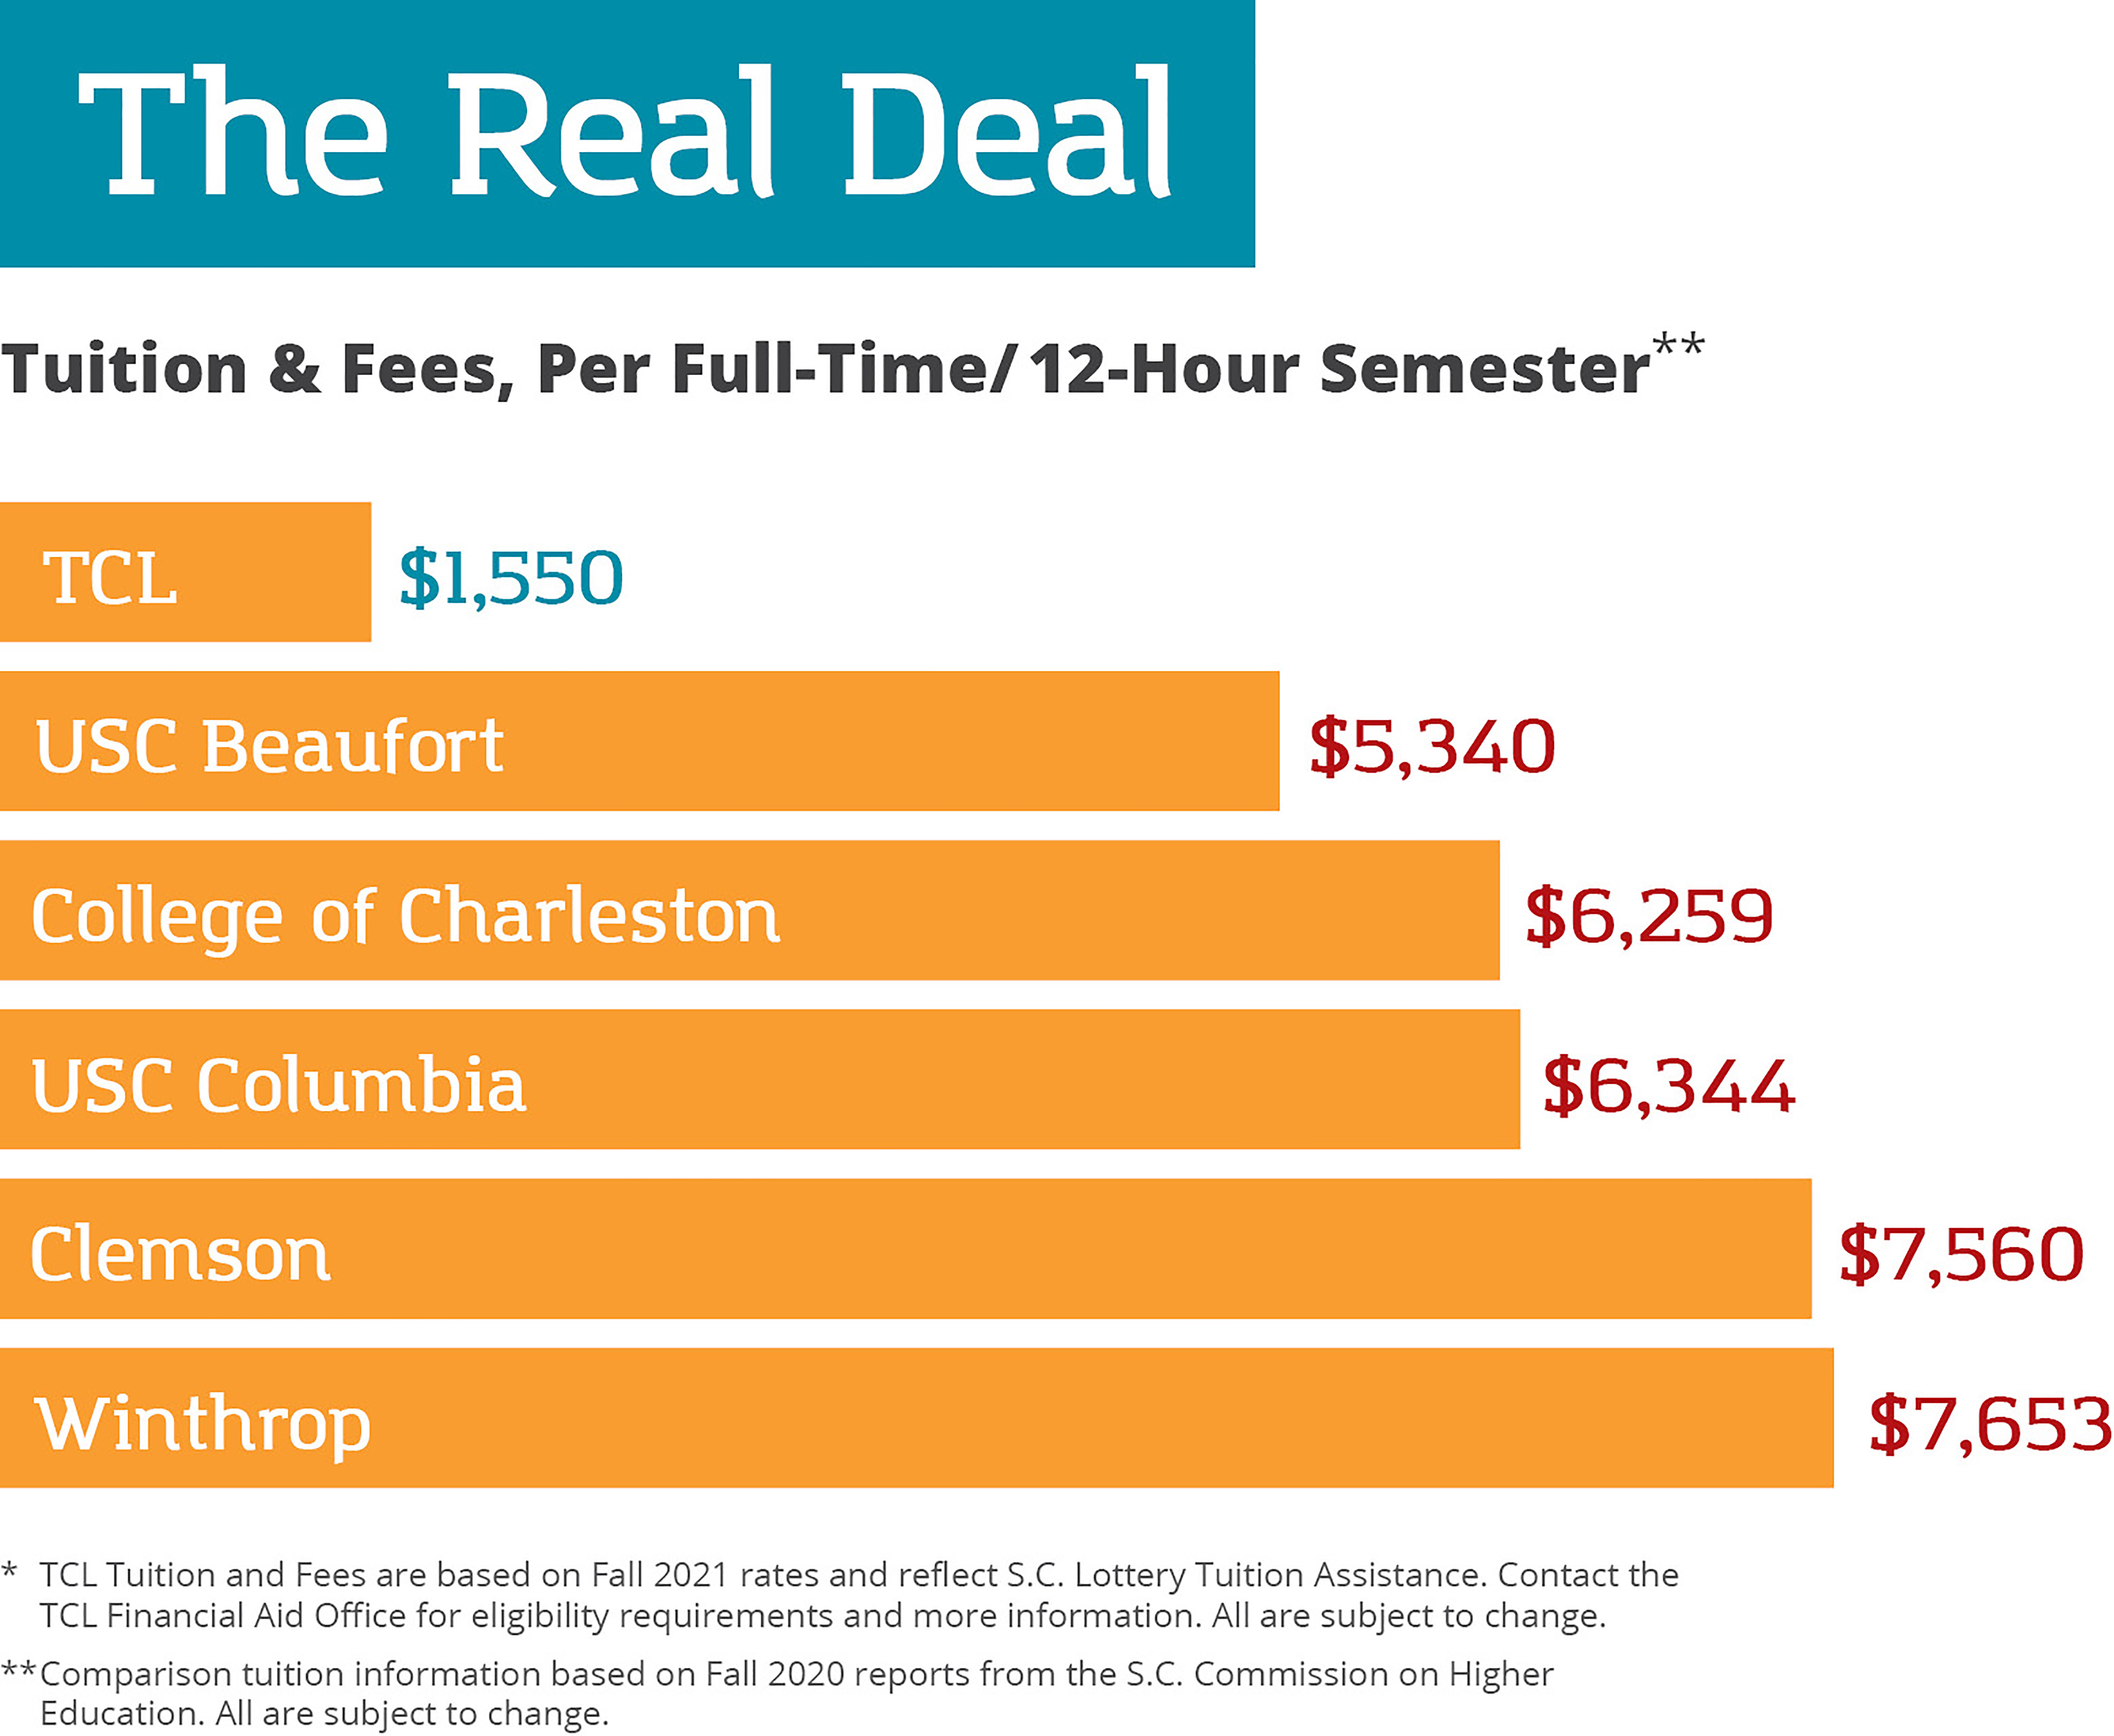 The Real Deal. Tuition Comparison. Tuition and fees, per full-time/12-hour semester at TCL is $1,550; at USC Beaufort is $5,340; at USC Columbia is $6,344; at College of Charleston is $6,259; at Clemson is $7,560; at Winthrop is $7,653. Comparison tuition information is based on Fall 2020reports from the South Carolina Commission on Higher Education. All are subject to change. TCL tuition and fees are based on Fall 2021 rates and reflect South Carolina Lottery Tuition Assistance. Contact the TCL Financial Aid Office for eligibility requirements and more information. All are subject to change.